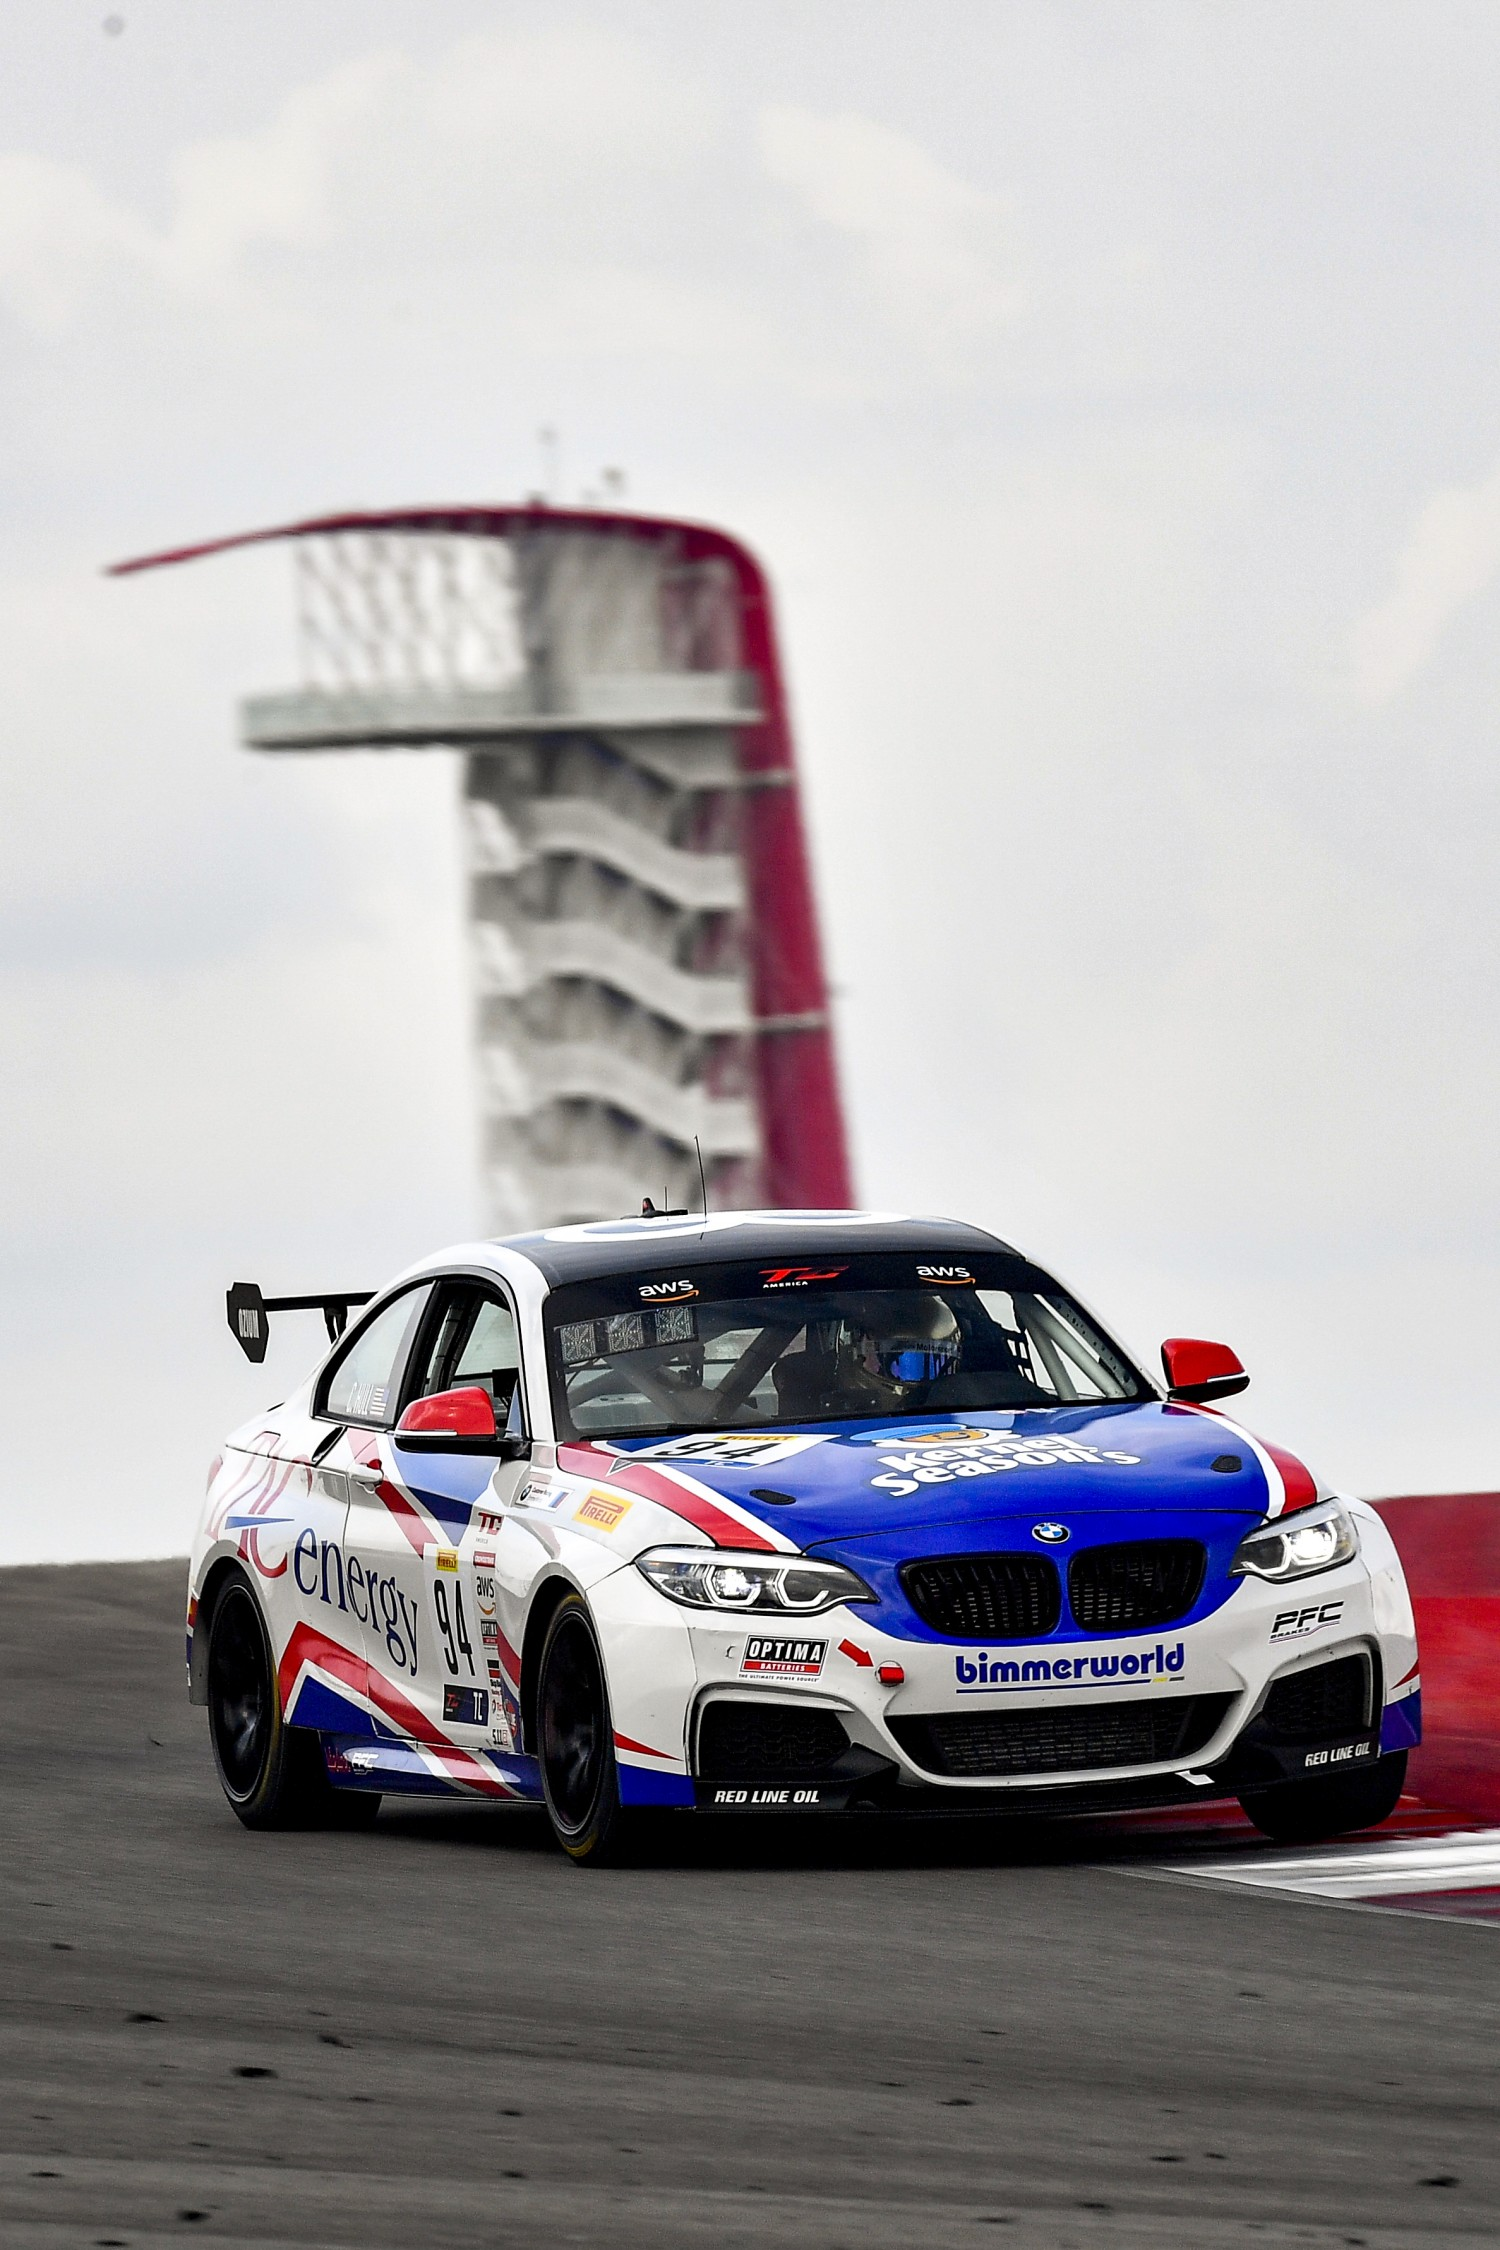 #94 BMW M240iR Cup of Chandler Hull, BimmerWorld, TC,    2020 SRO Motorsports Group - COTA2, Austin TX Photographer: Gavin Baker/SRO | © 2020 Gavin Baker